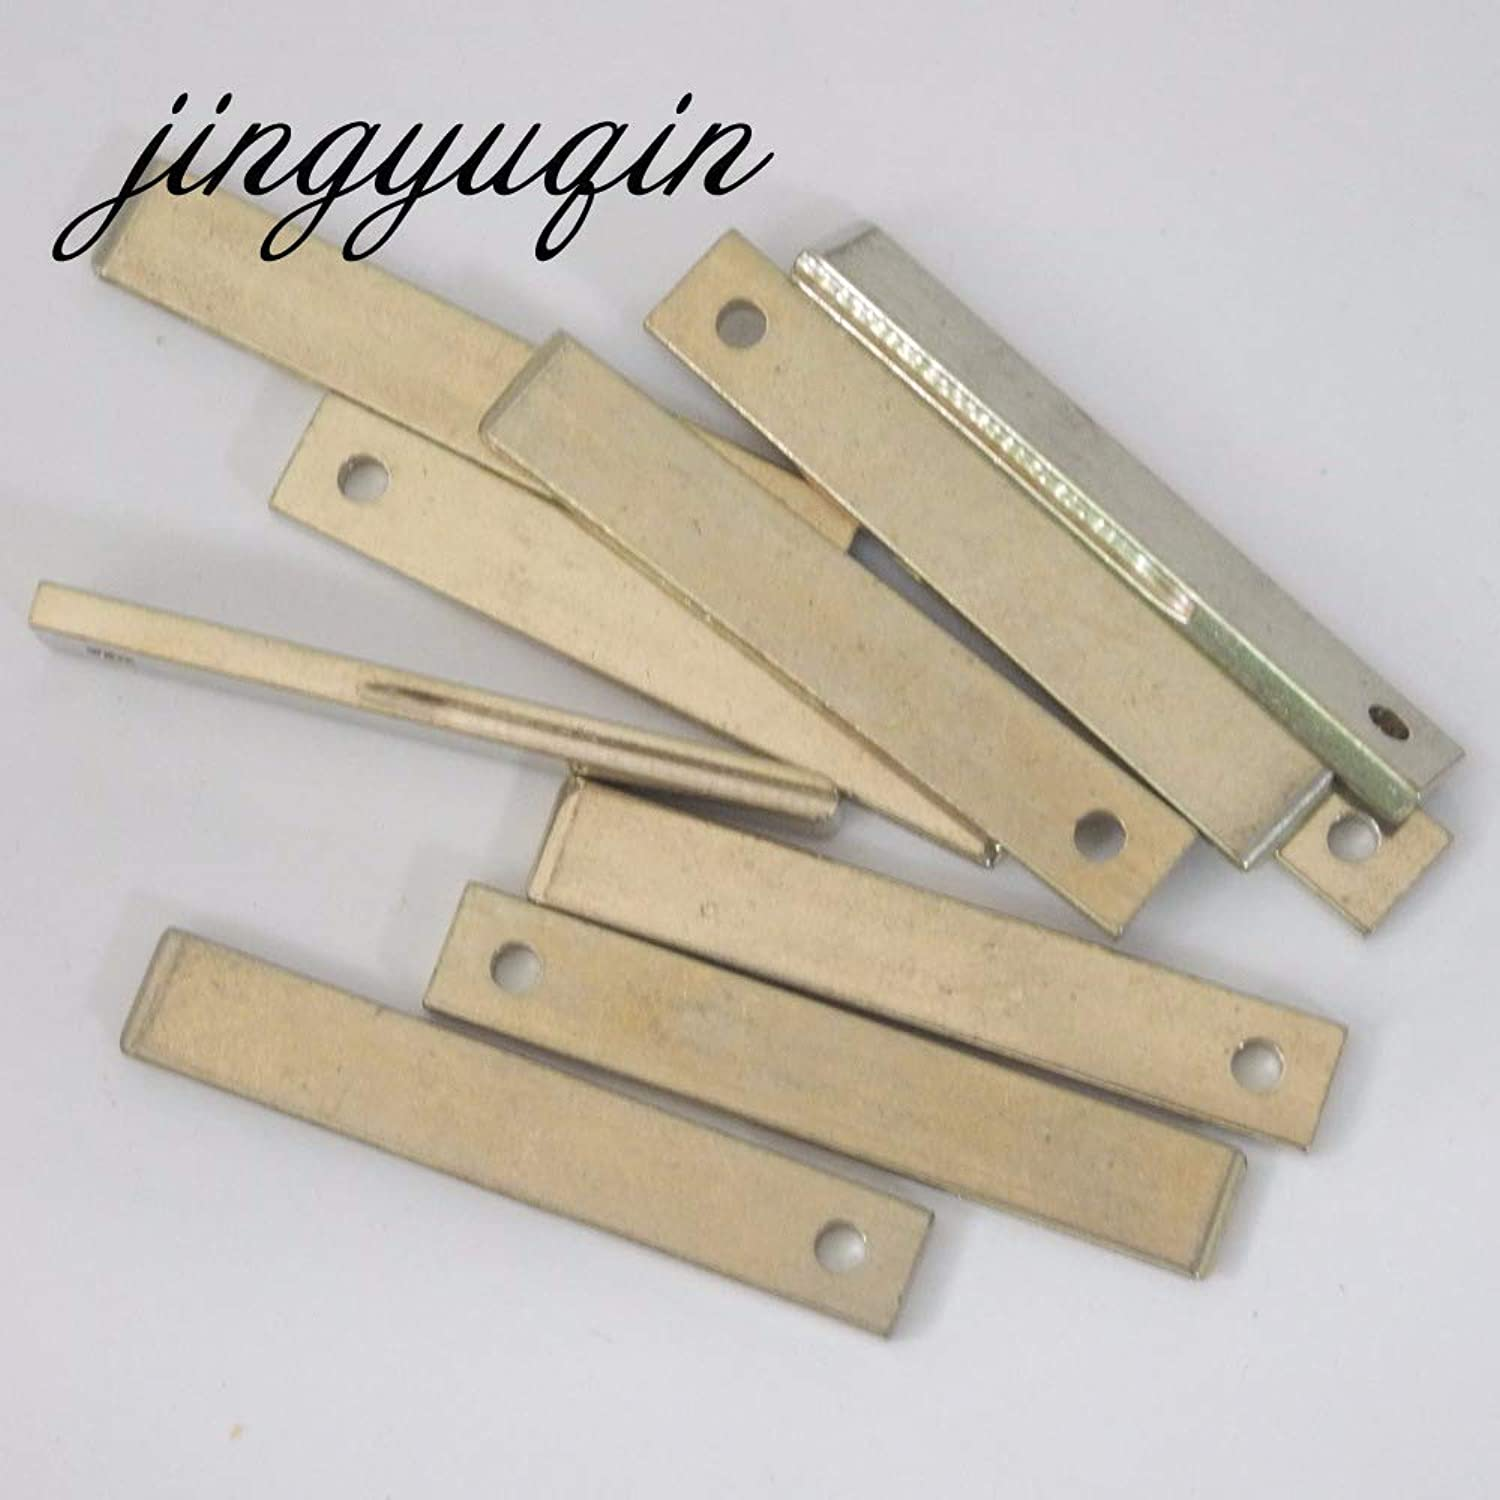 Jingyuqin HU83 Blank Key Replacement Uncut Blade with Groove on Side for Peugeot 307 Citroen Car Key 20pcs lot